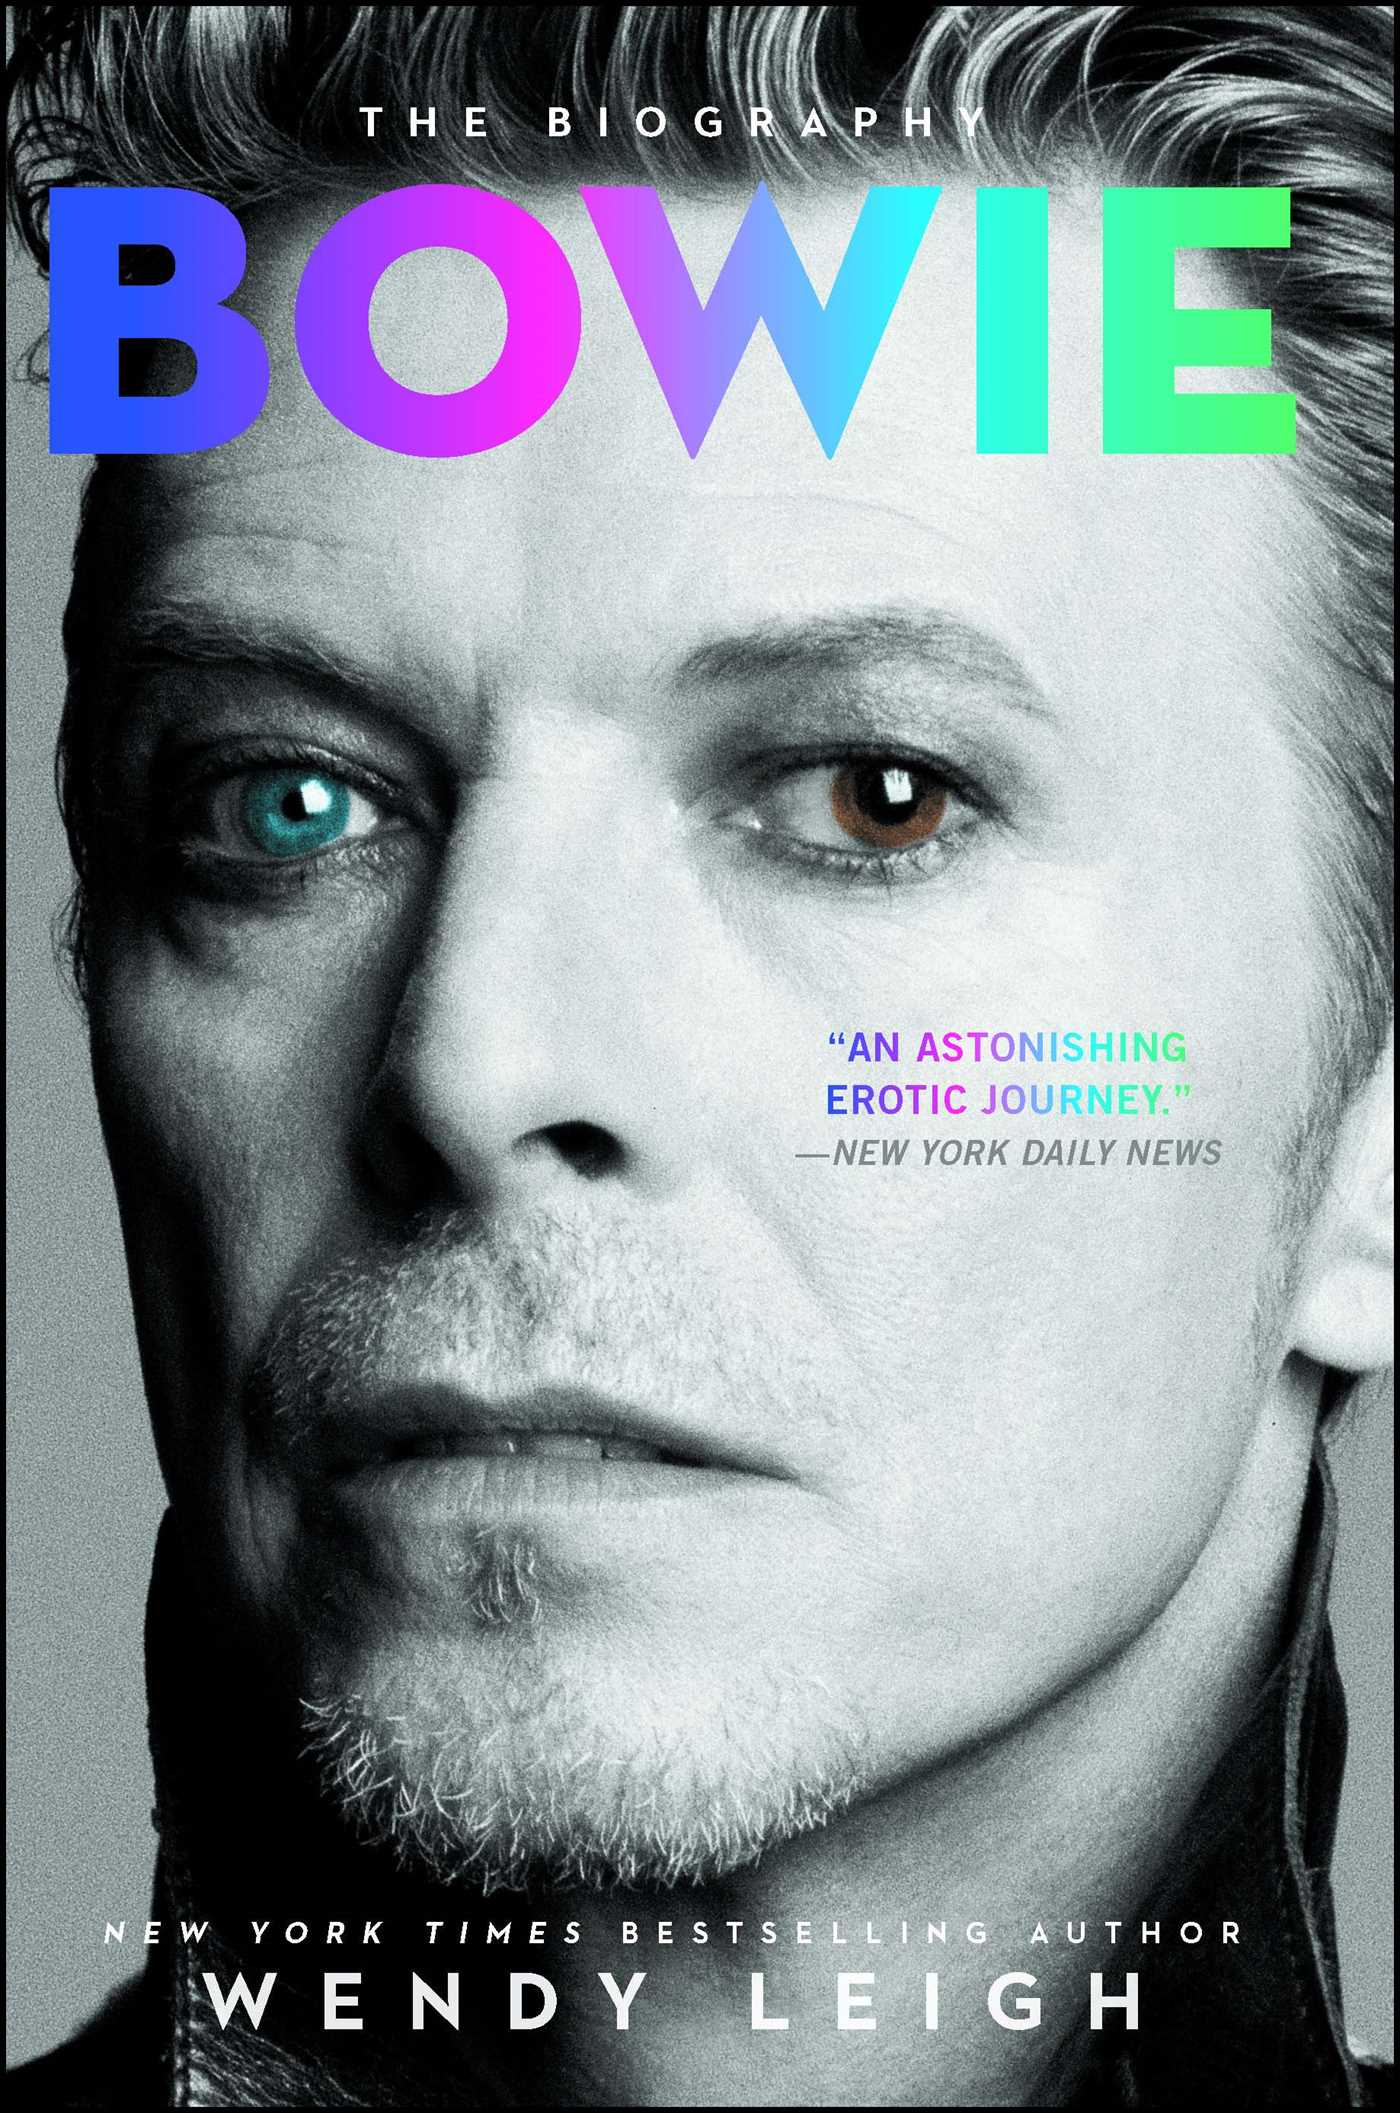 Wendy leigh official publisher page simon schuster uk book cover image jpg bowie fandeluxe Document